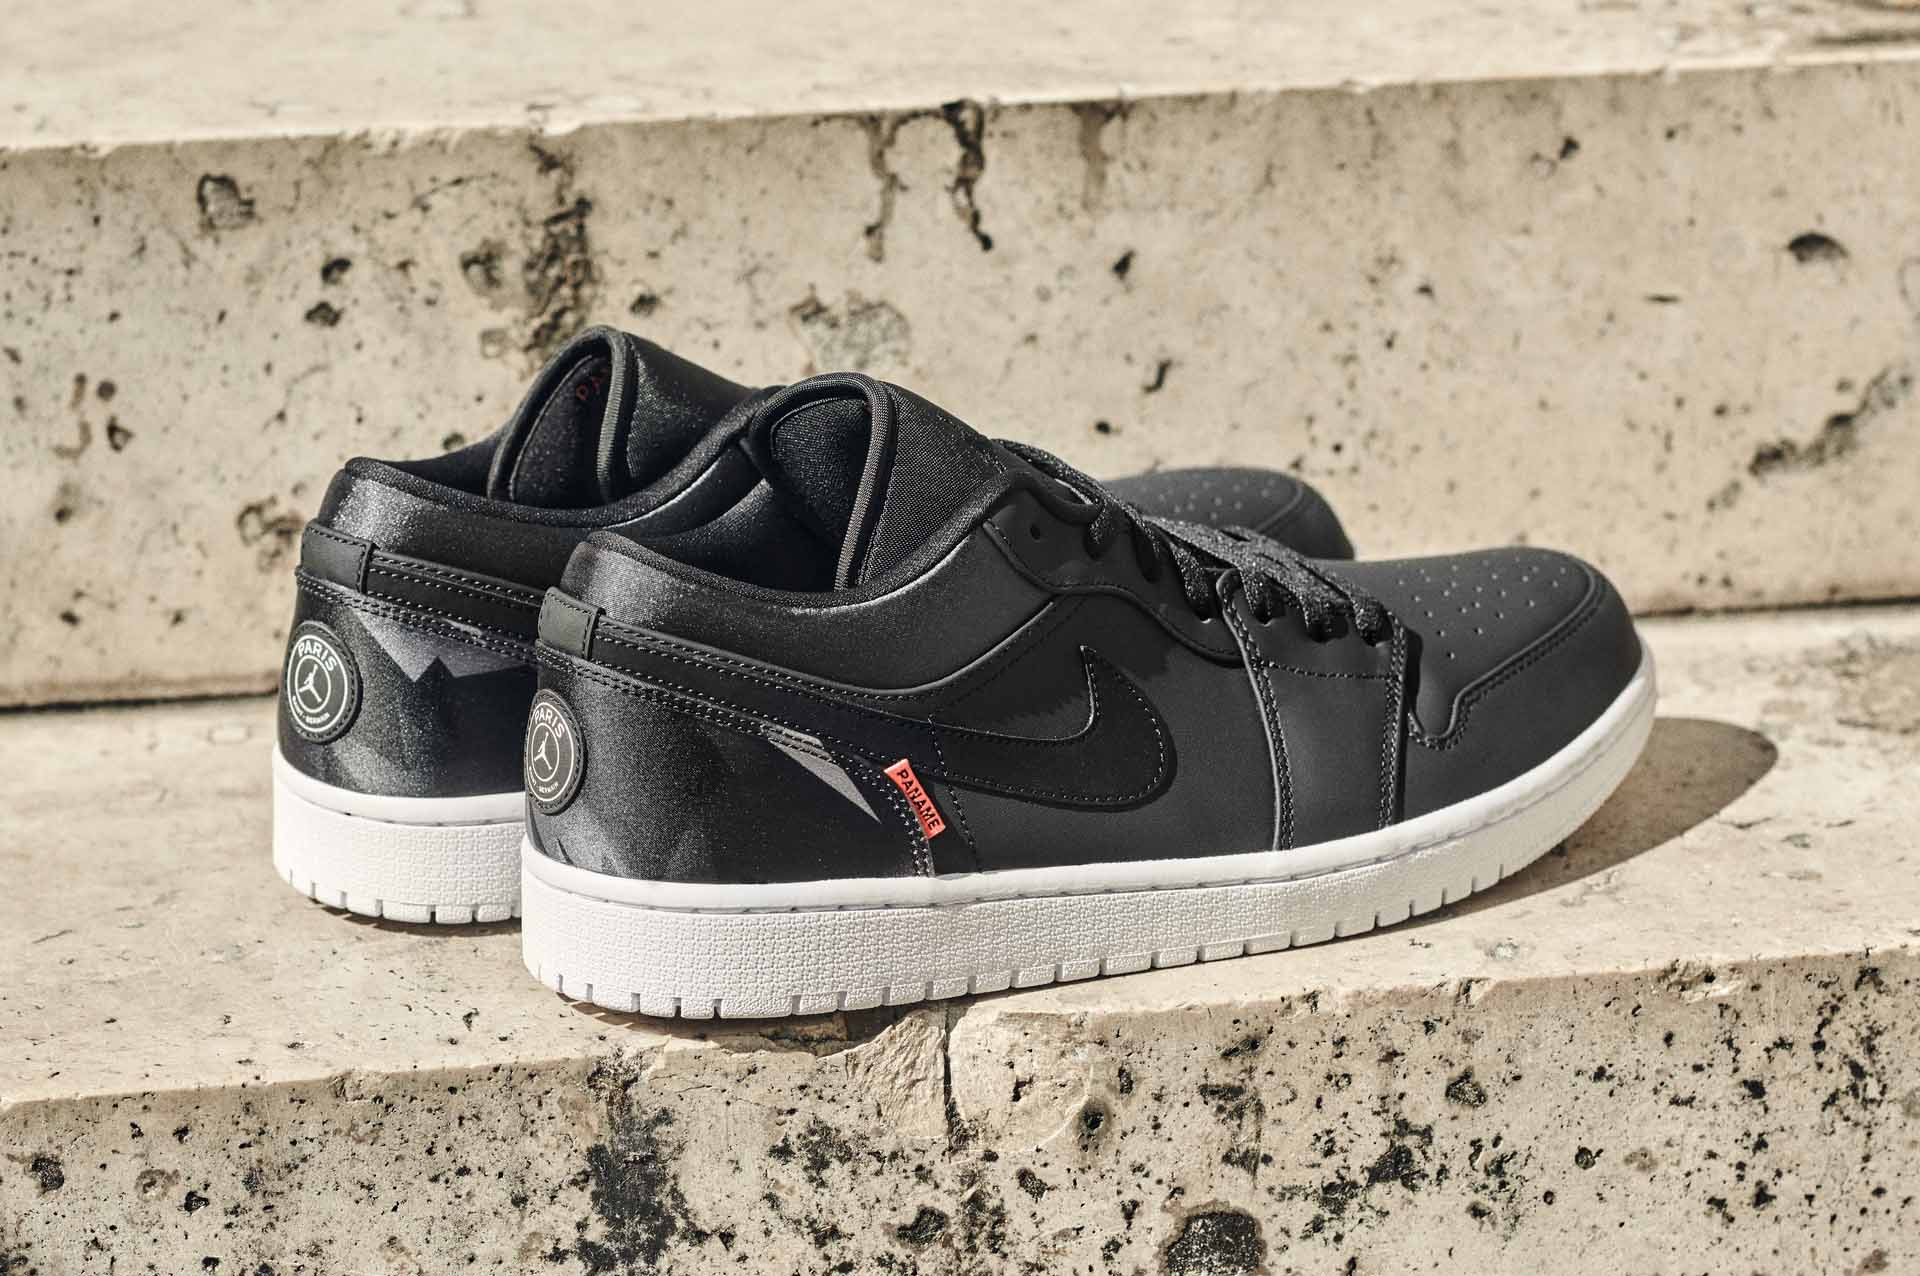 best service 581ef 2e645 The PSG x Air Jordan 1 Low Has Just Dropped - SoccerBible